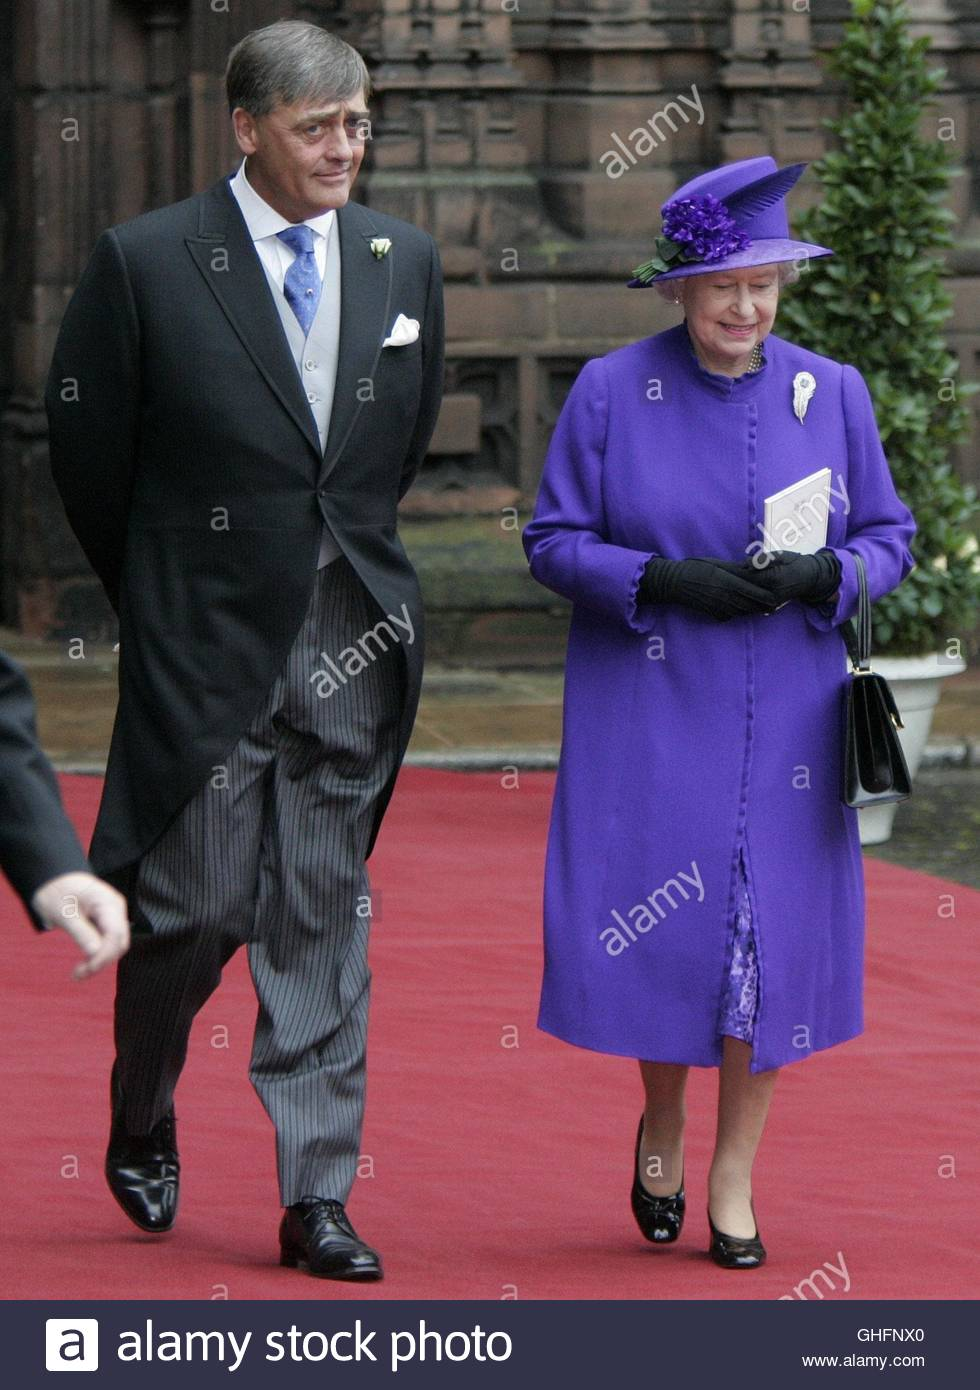 File photo dated 6/11/2004 of the Duke of Westminster and Queen Elizabeth II leaving Chester Cathedral following - Stock Image